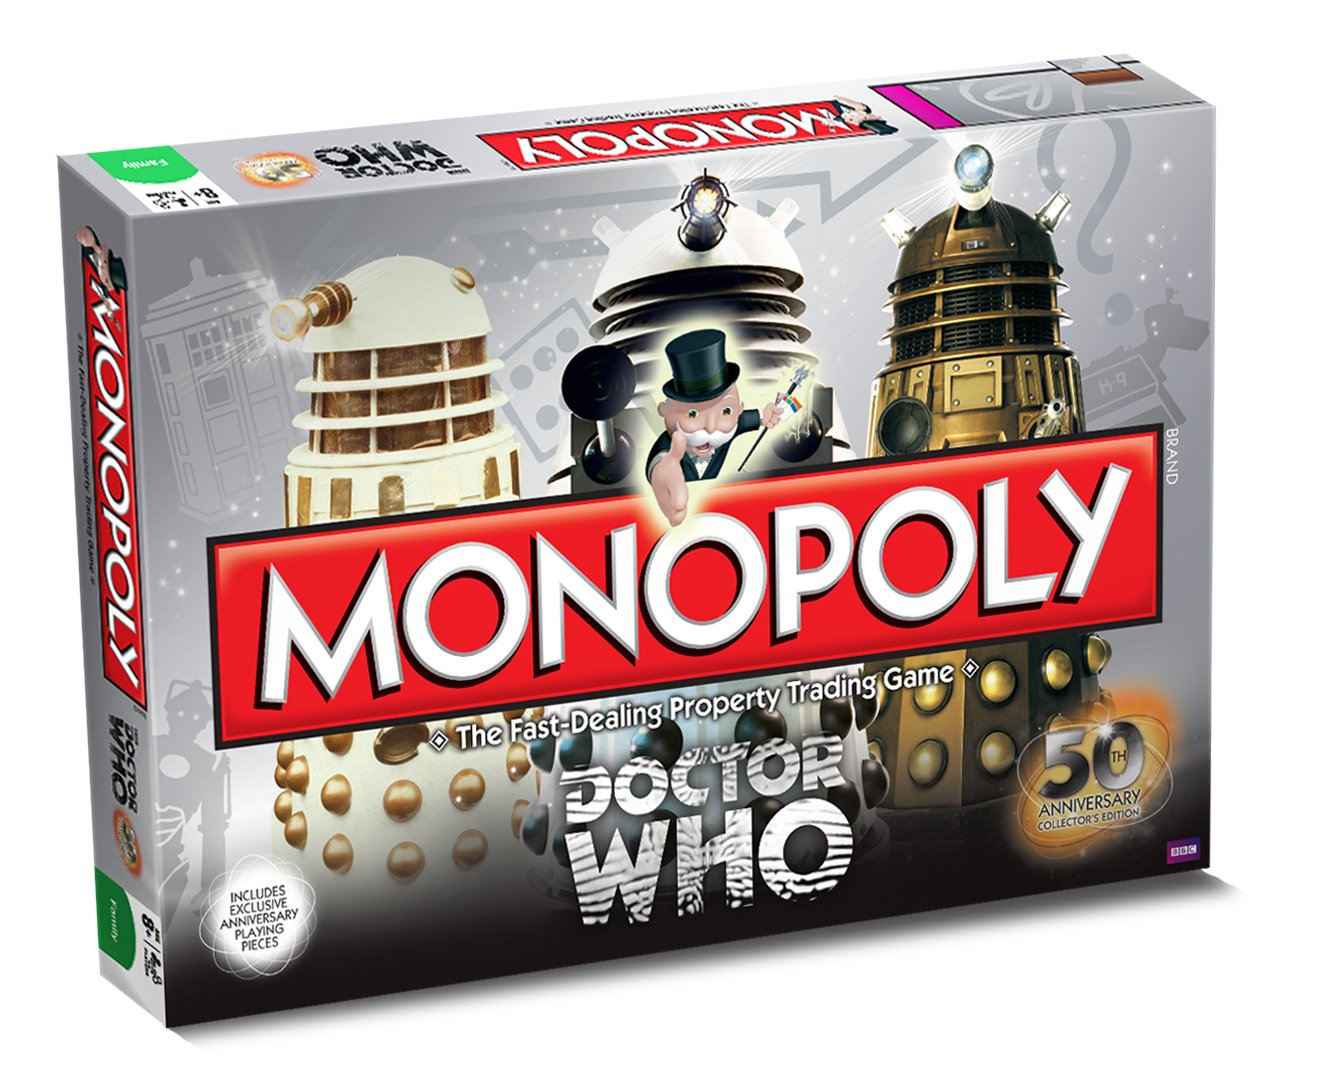 doctor who monopoly 50th anniversary collector\\\\\\\\\\\\\\\\\\\\\\\\\\\\\\\'s edition board game